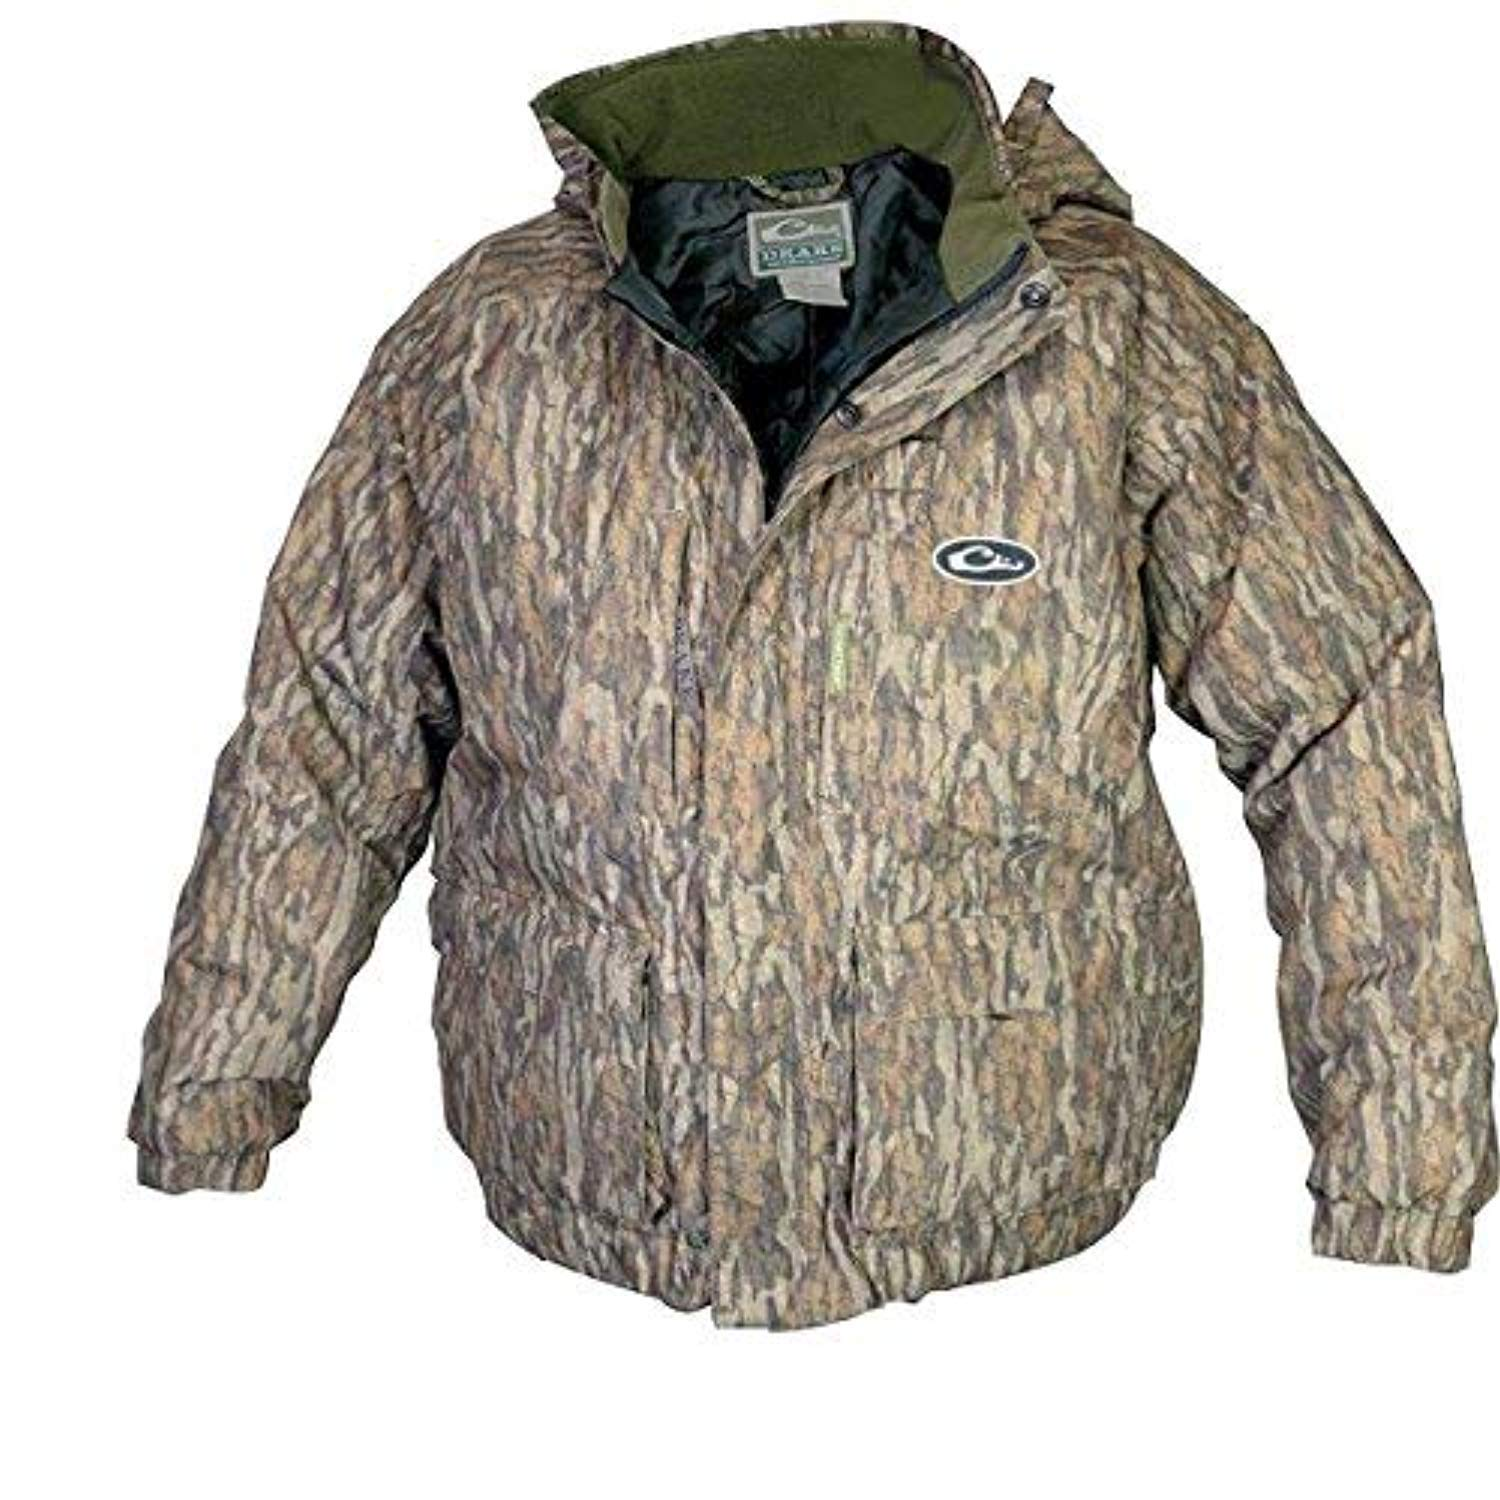 Drake LST Youth Eqwader 3 in 1 Plus 2 Wader Coat, Color: Mossy Oak Bottomland, Size: Size 16 (DW2970-006-16) by Drake